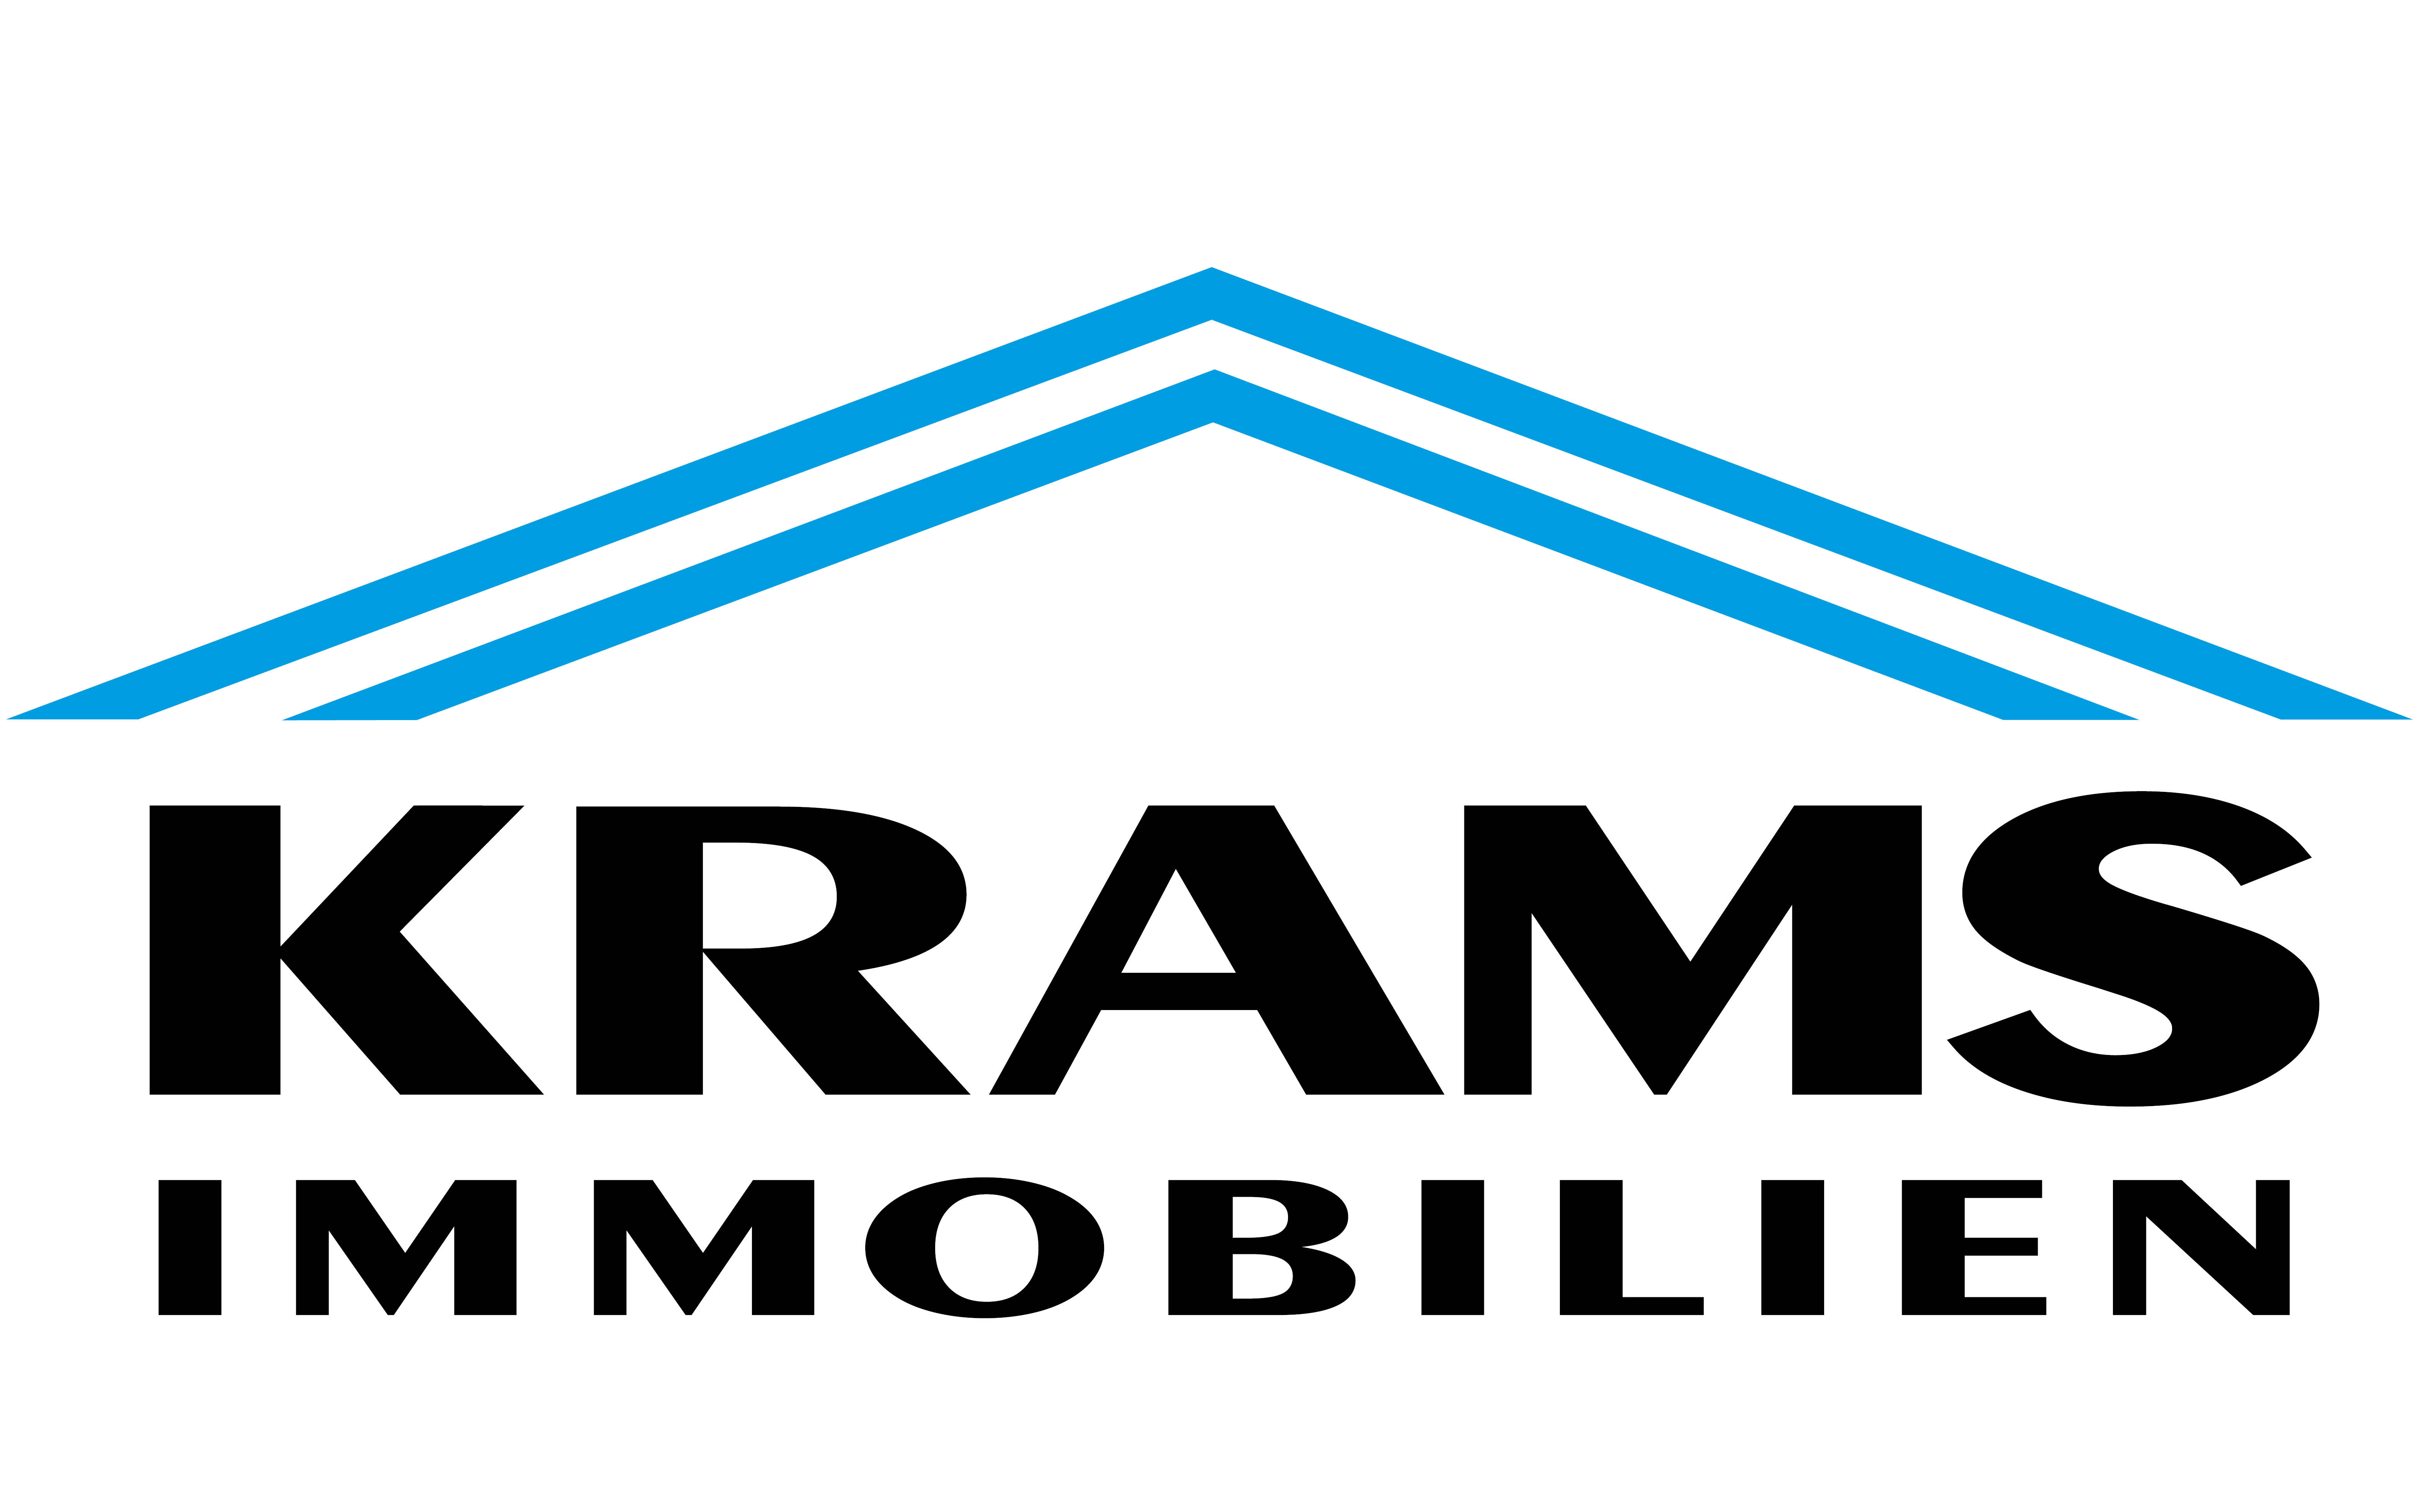 Krams Immobilien